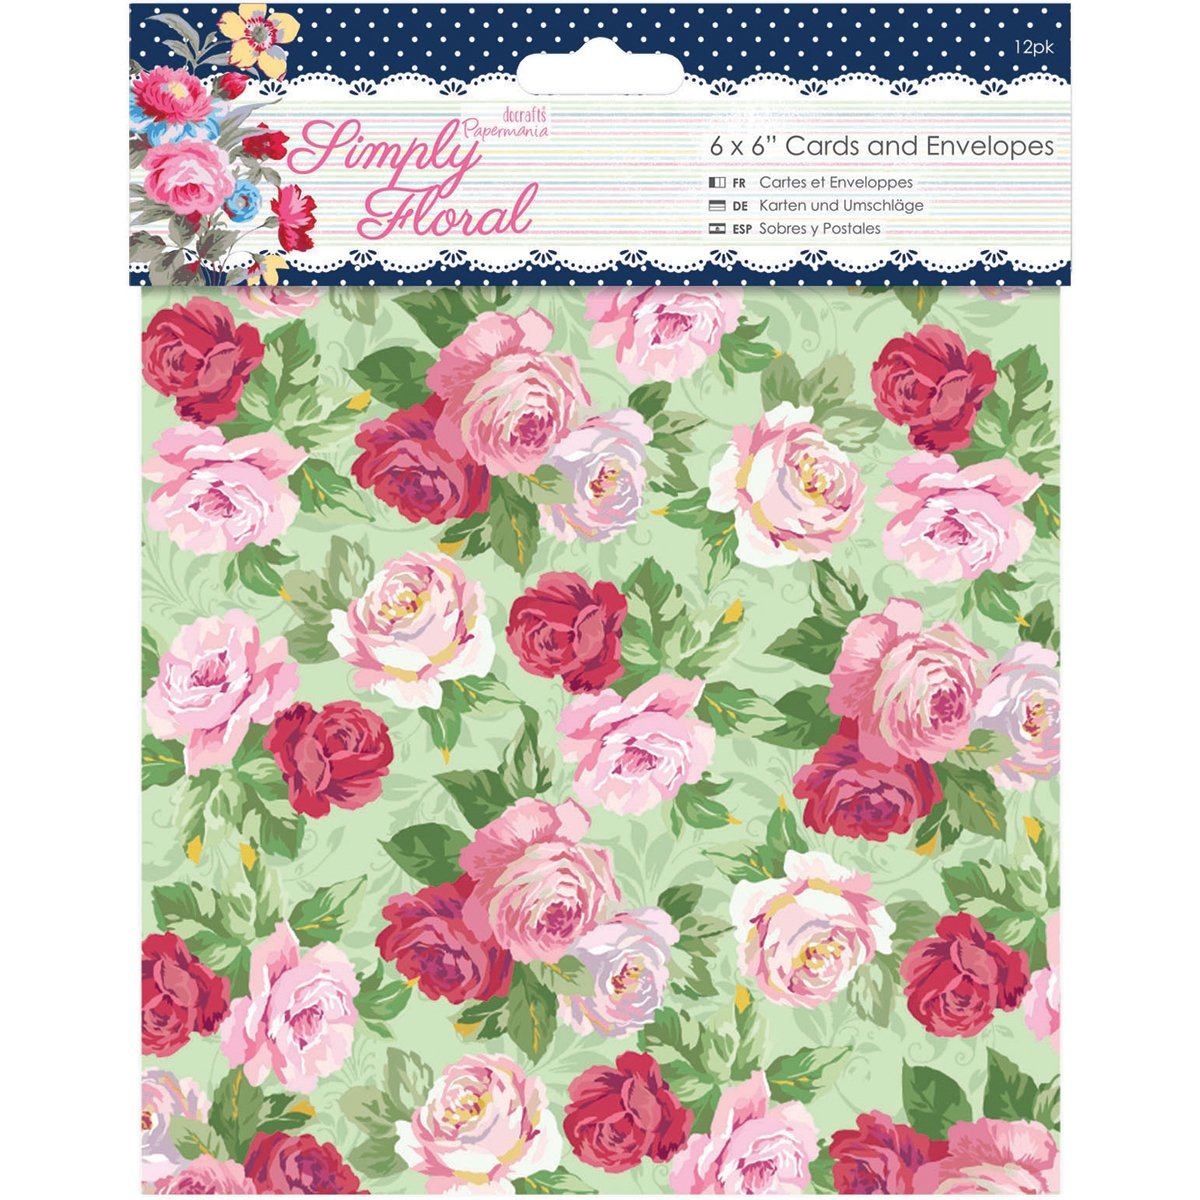 docrafts Papermania Simply Floral Cards with Envelopes, 6 by 6 by DOCrafts   B00RVYHTDO